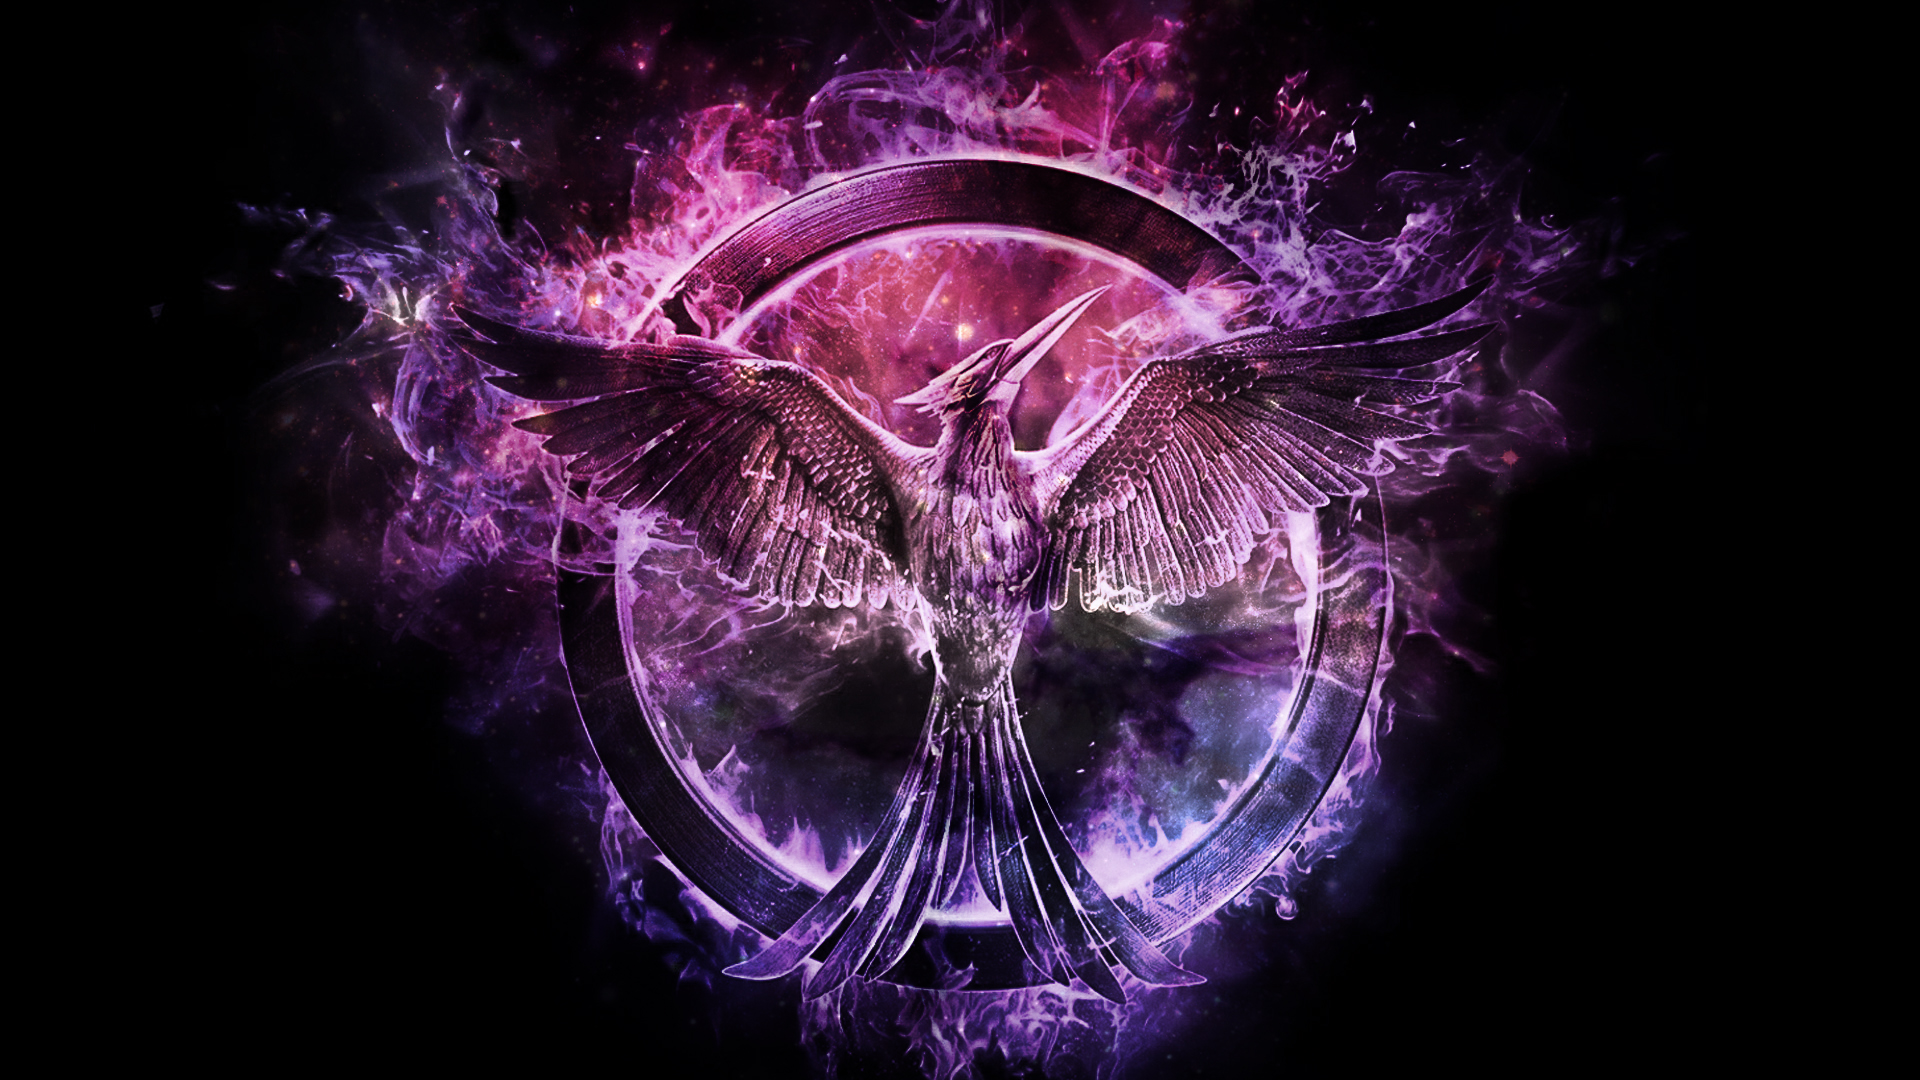 Iphone X Fornite Wallpapers The Hunger Games Panem Rising Full Hd Wallpaper And